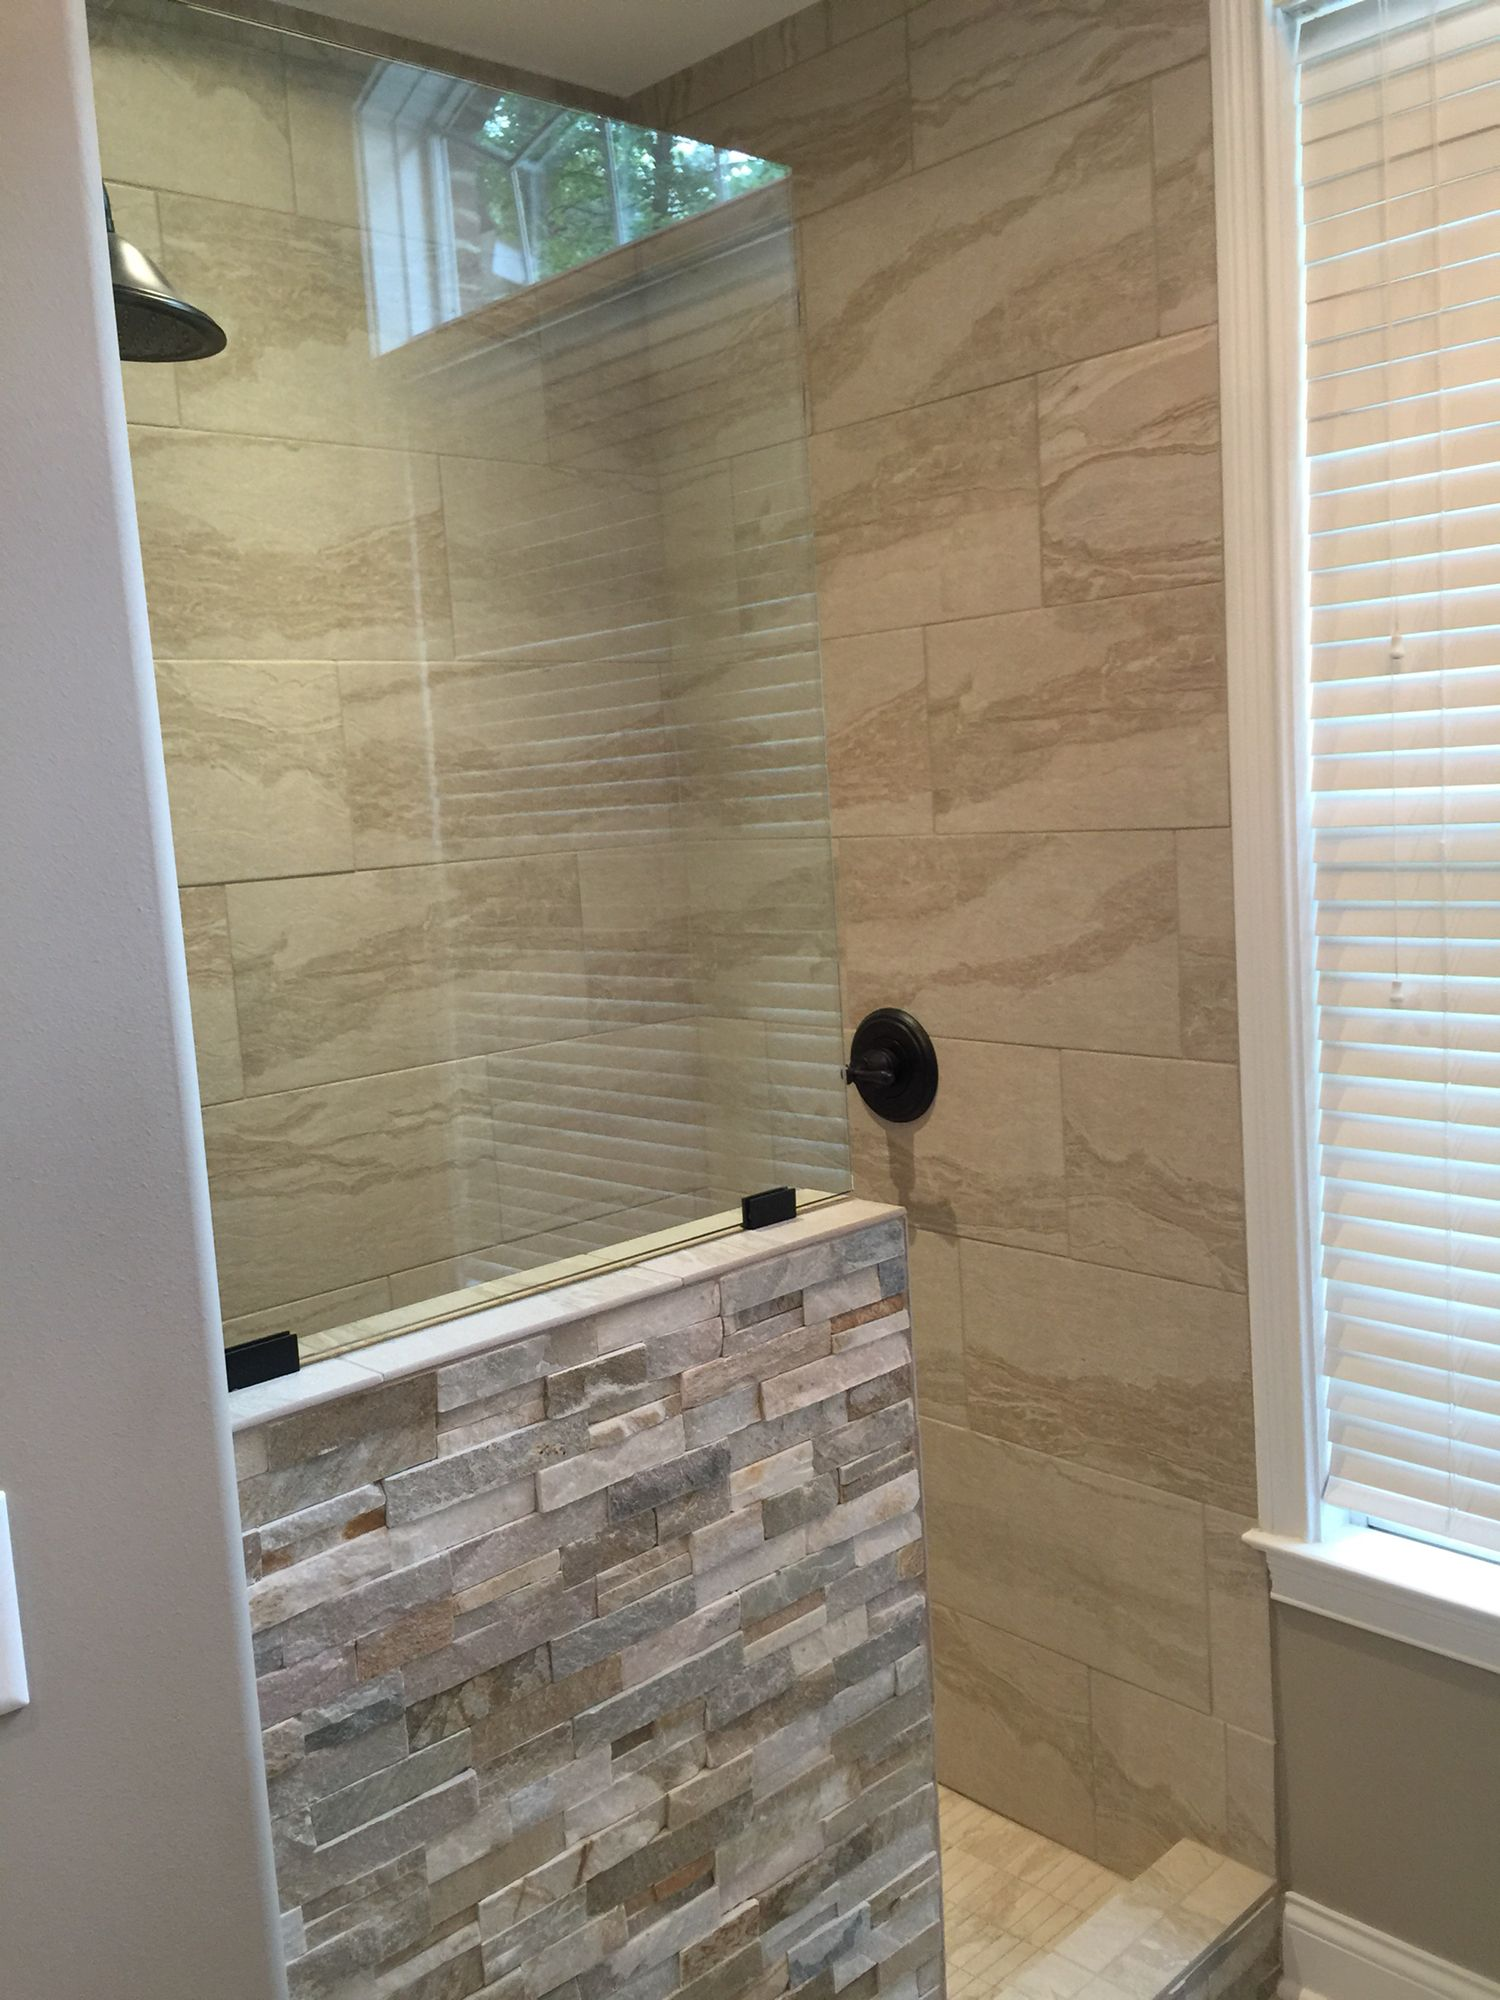 Shower In Bathroom Walk In Shower No Door Bathroom Interior In 2019